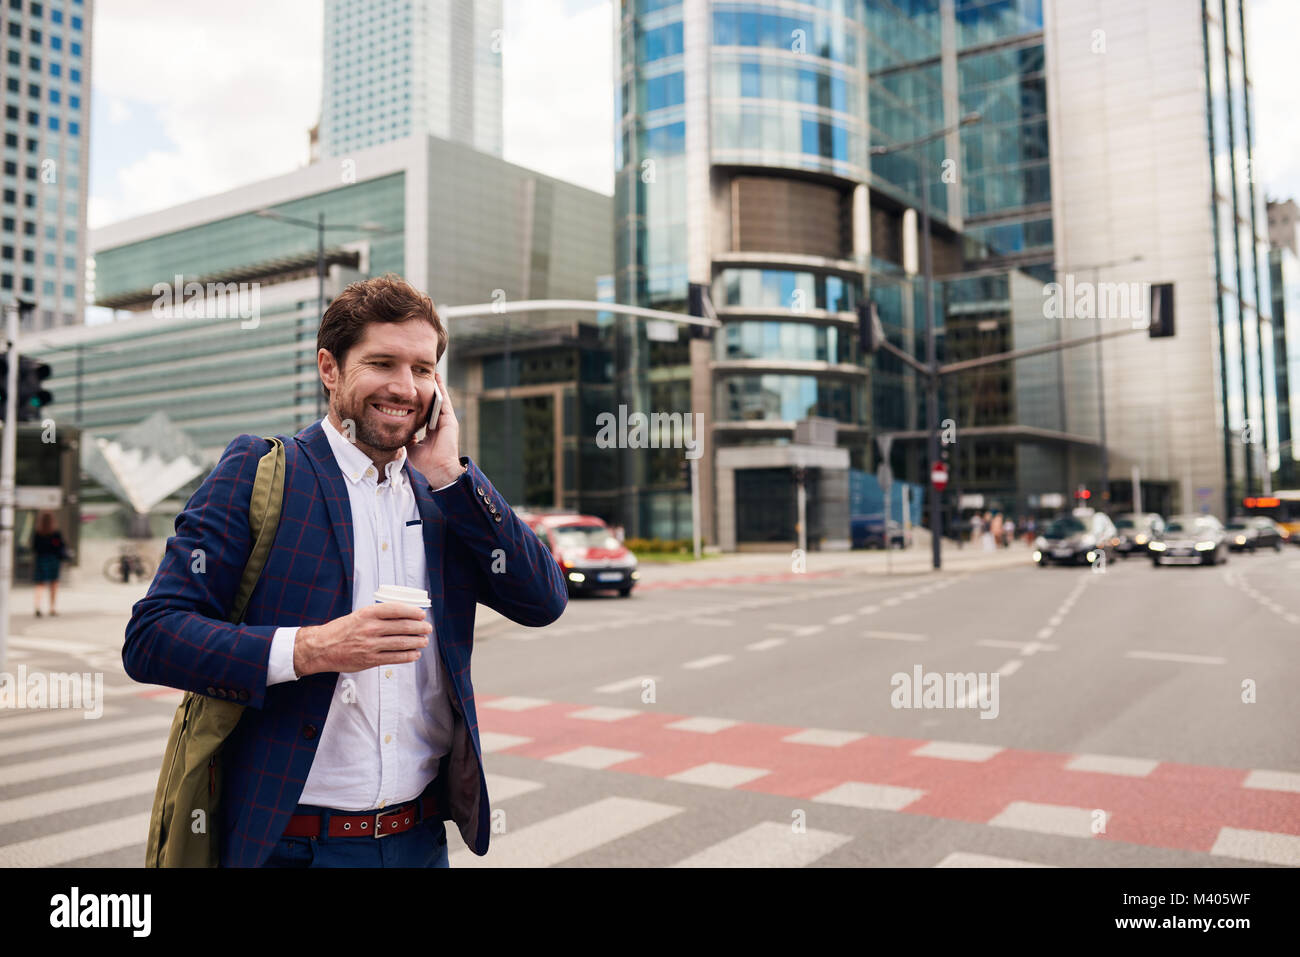 Smiling businessman walking to work on his morning commute - Stock Image